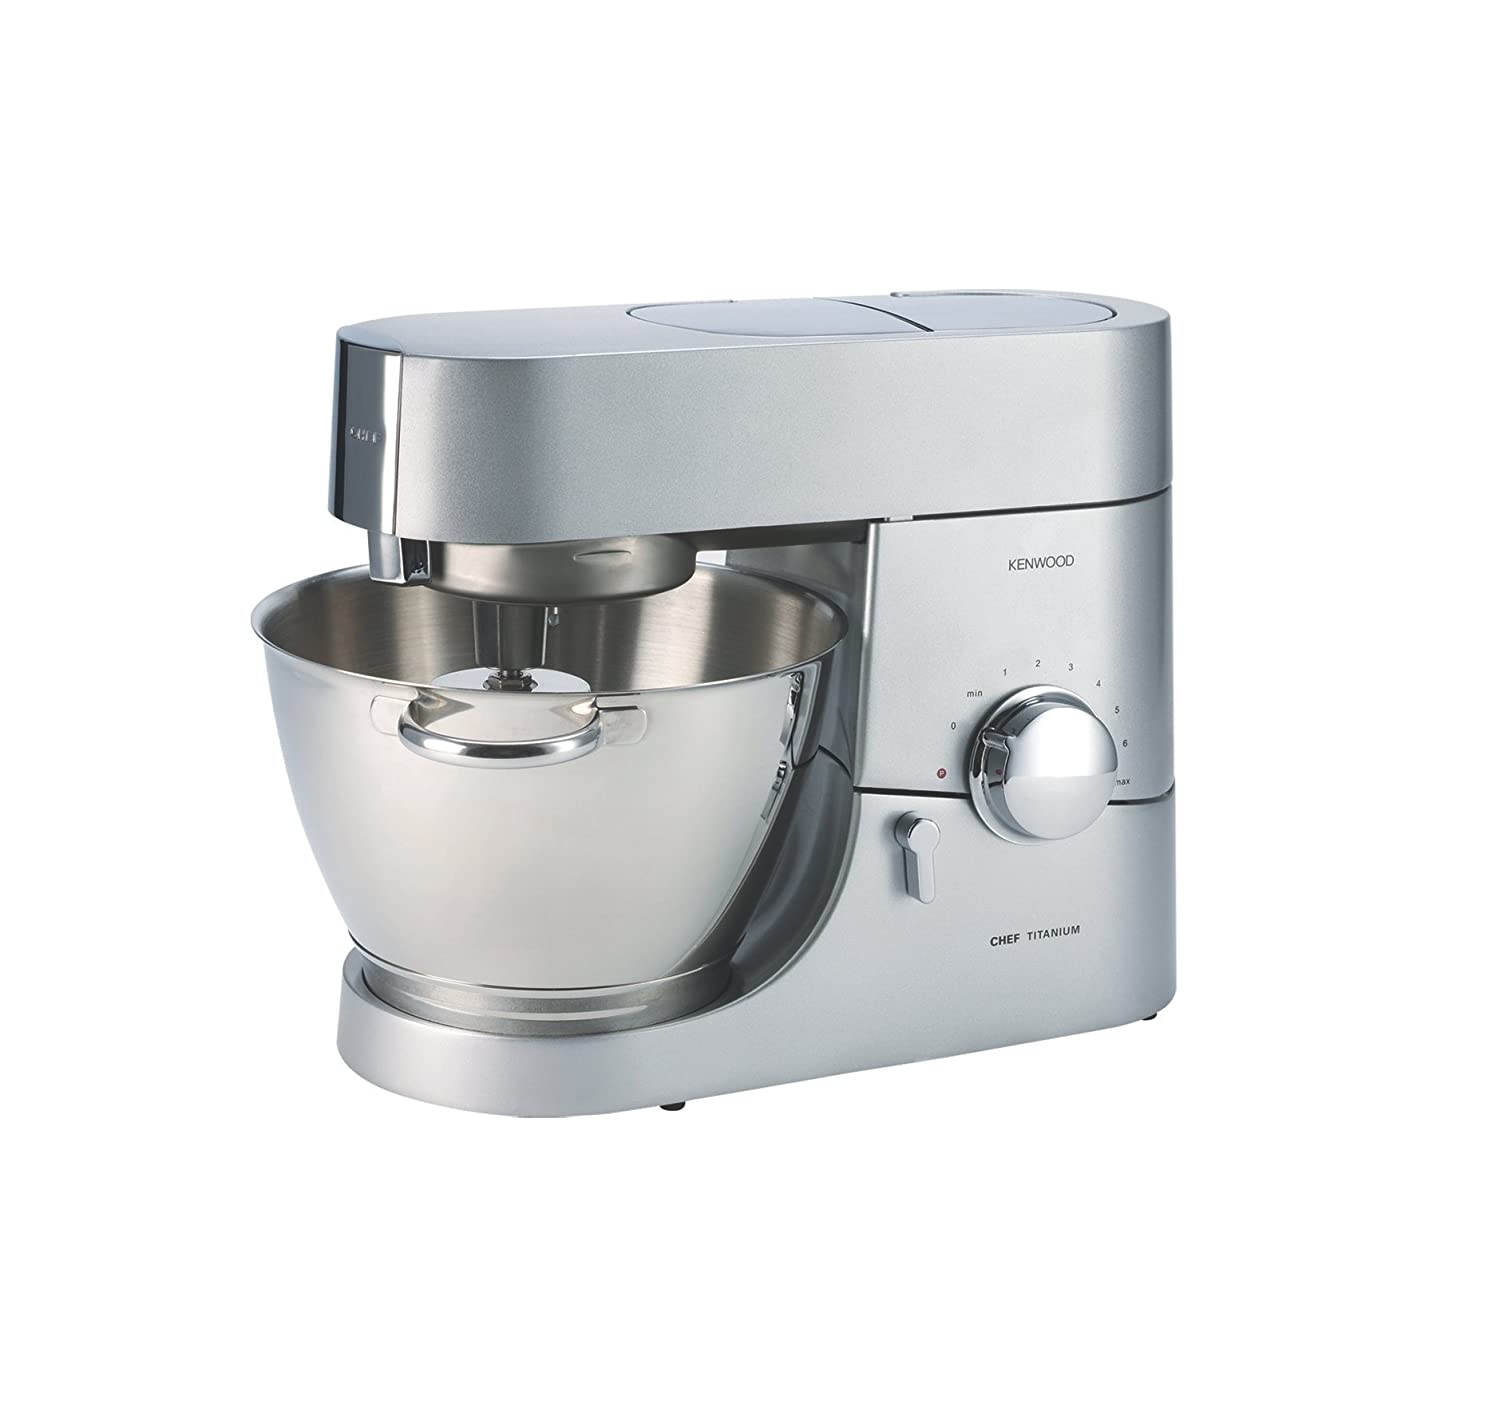 Kenwood KMC011 5 quart Chef Titanium Kitchen Machine, Stainless Steel